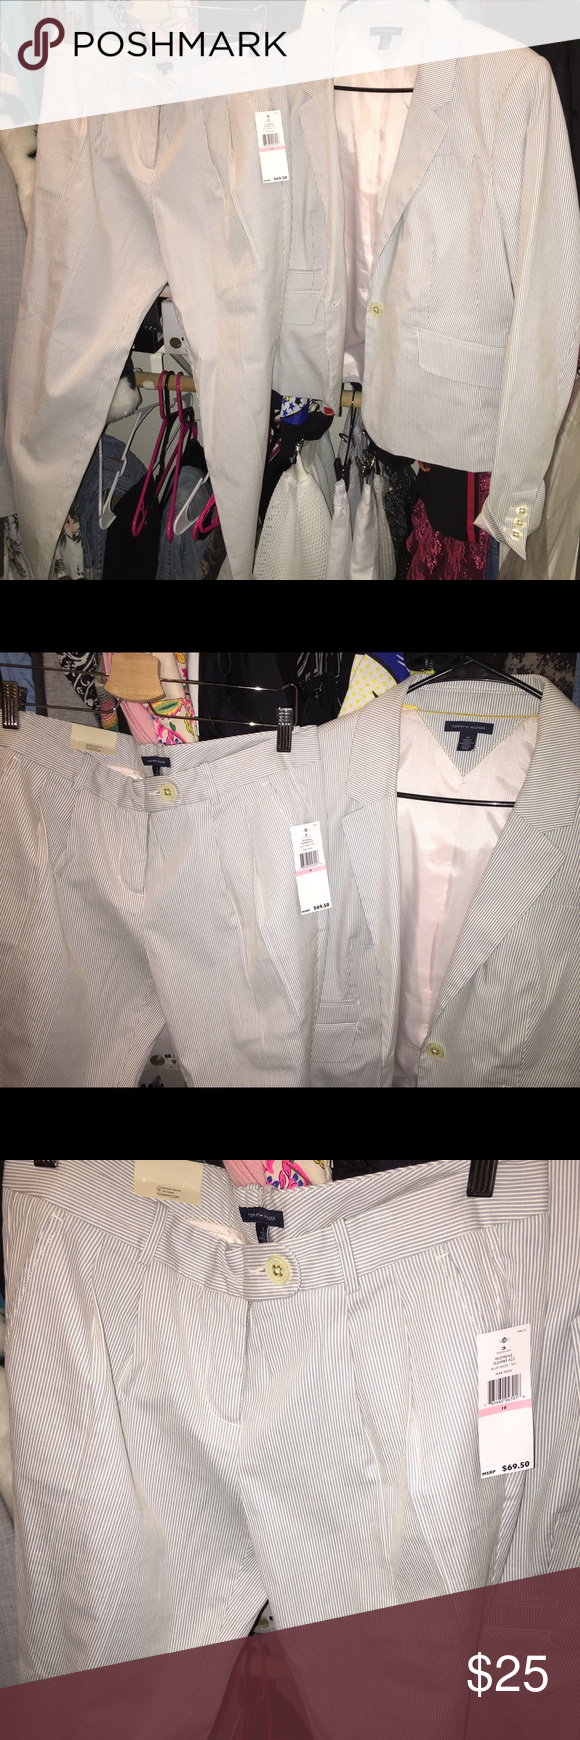 Tommy hillfiger suit Perfect condition New with tags. Tag says 10 on pants and 14 on the jacket but I would say they fit a size medium Tommy Hilfiger Pants